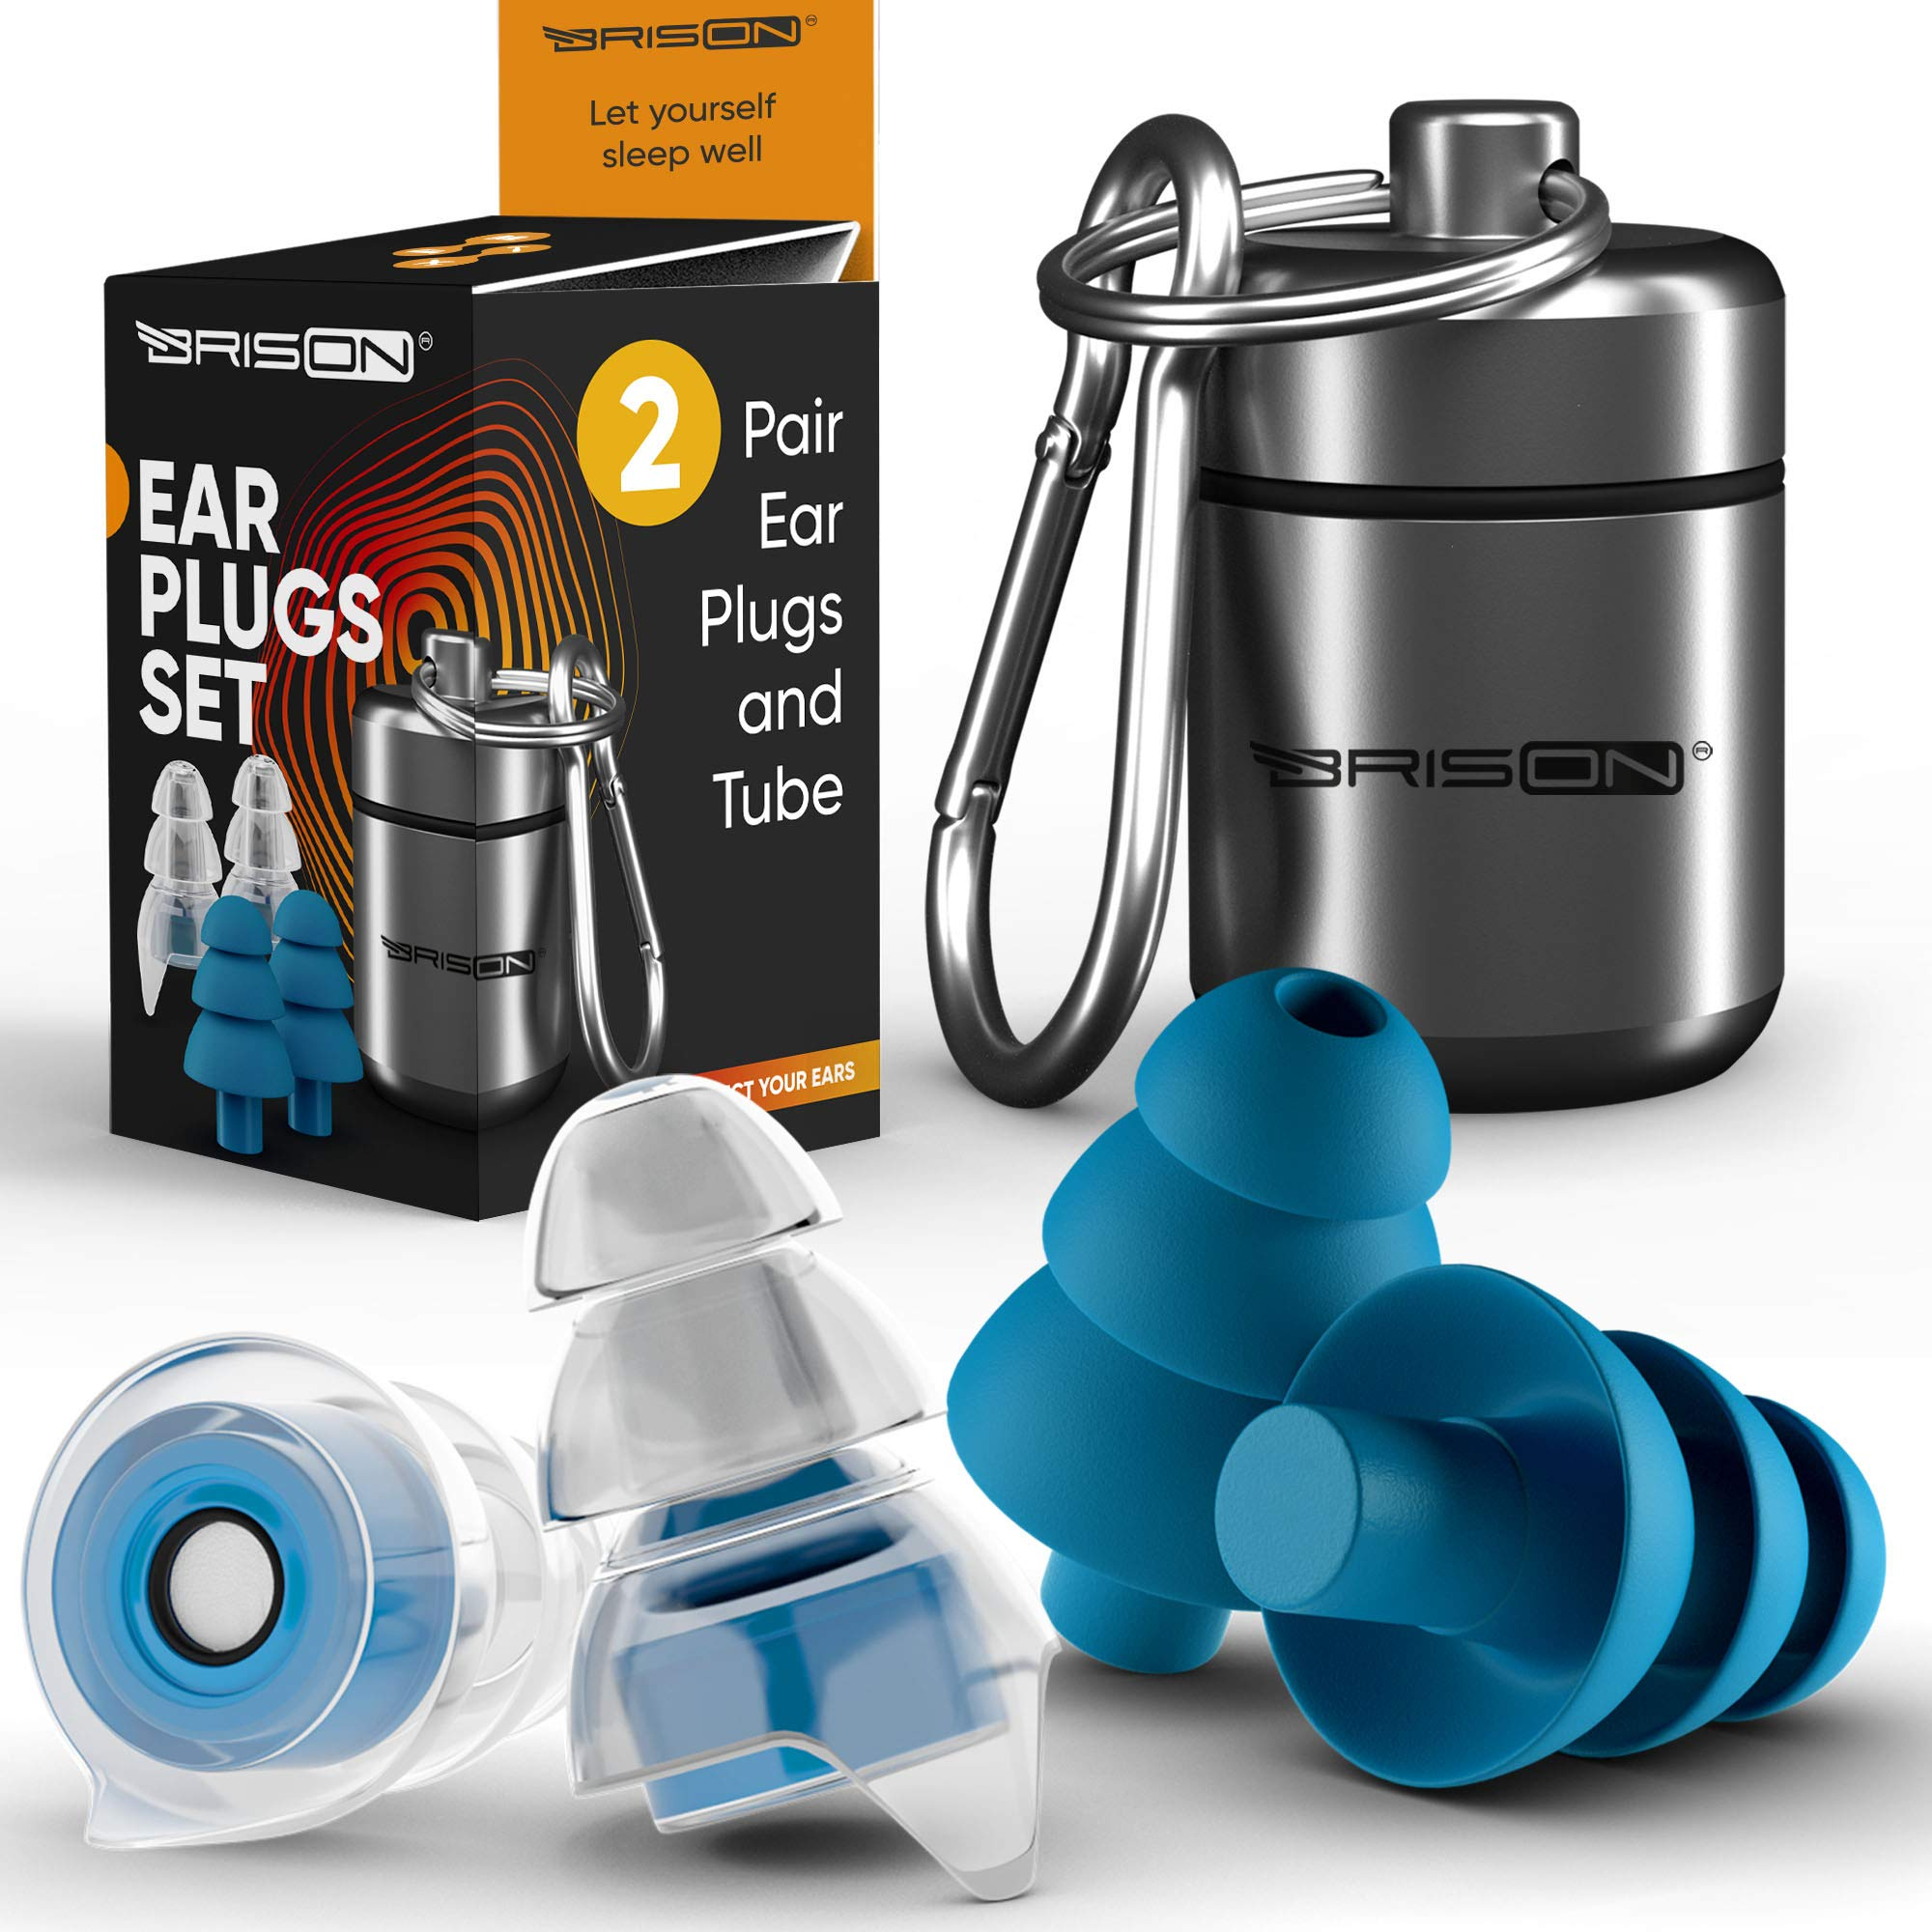 Noise Cancelling Ear Plugs for Sleeping [2 Pairs] Reusable Safe Silicone Earplugs Musicians Hearing Protection with High Fidelity Sound Reduction for Concerts Musicians Motorcycles Shooting Working by BRISON